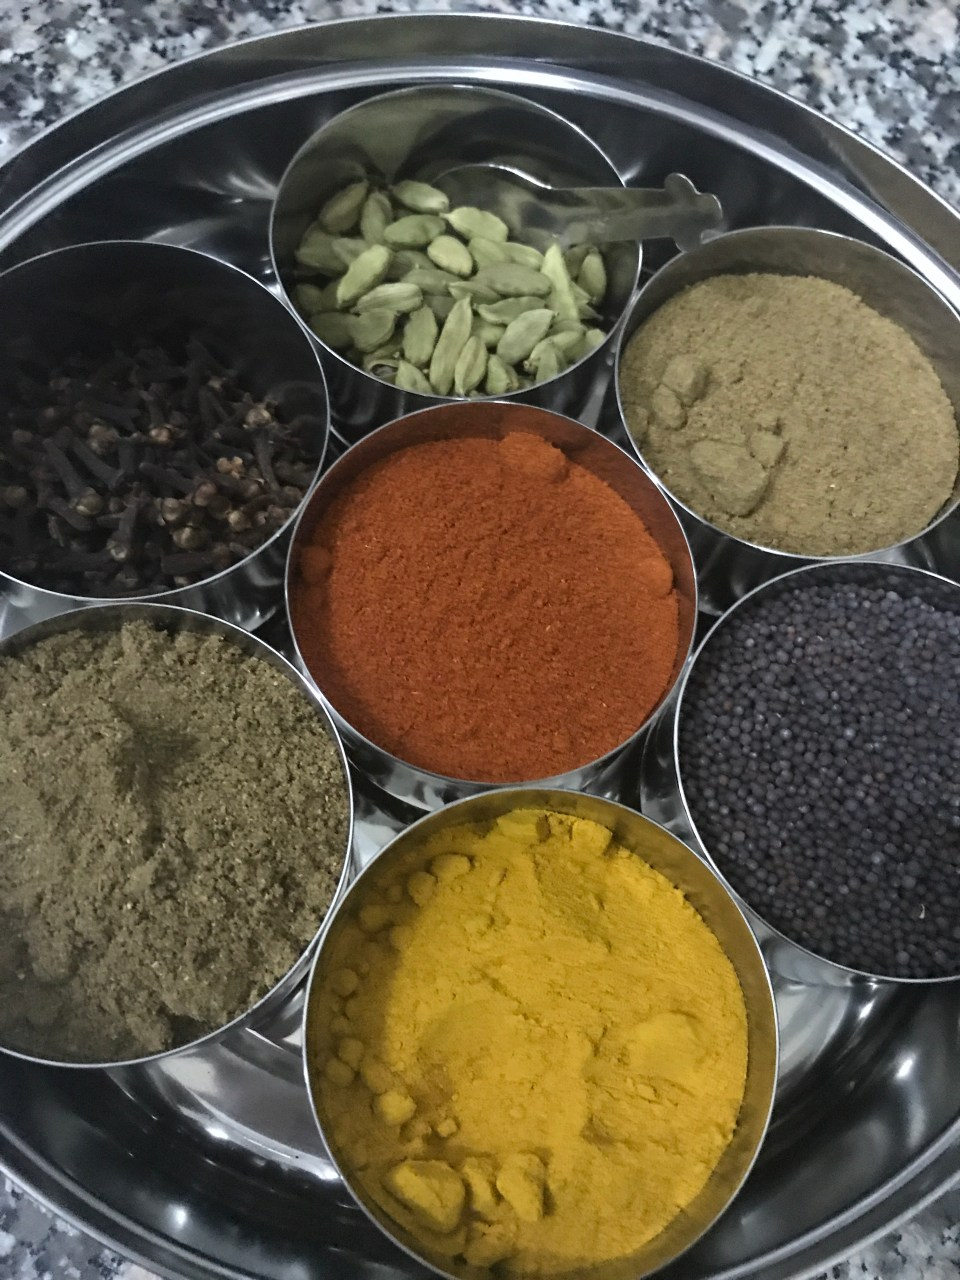 Masala spices